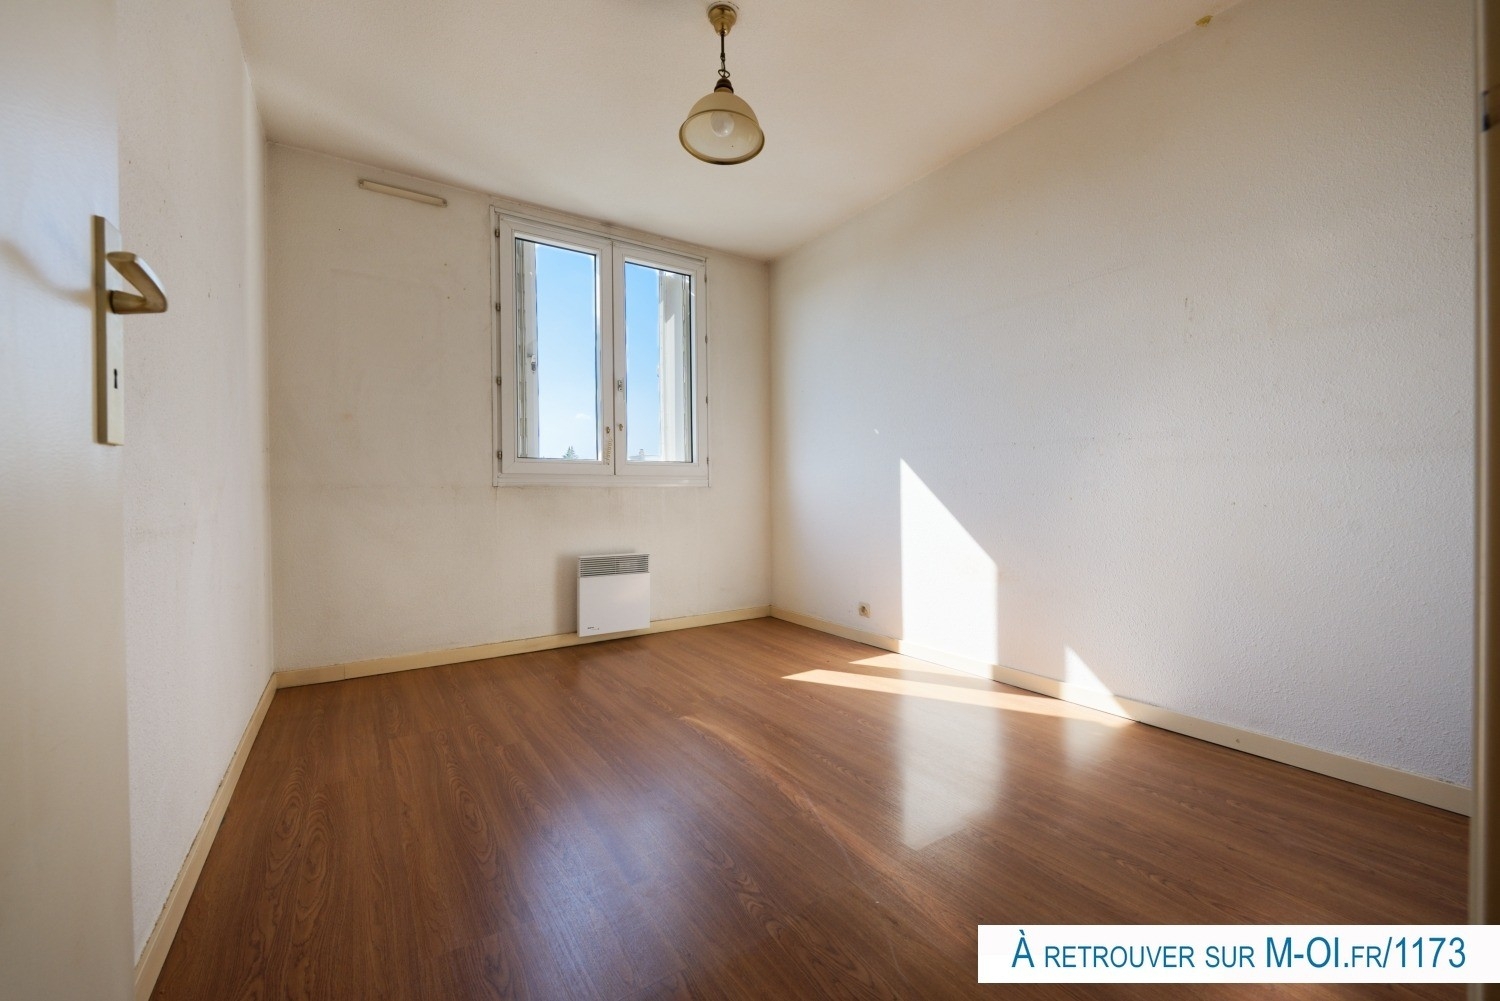 13100-aix-en-provence-vente-appartement-4-pieces_1.jpg